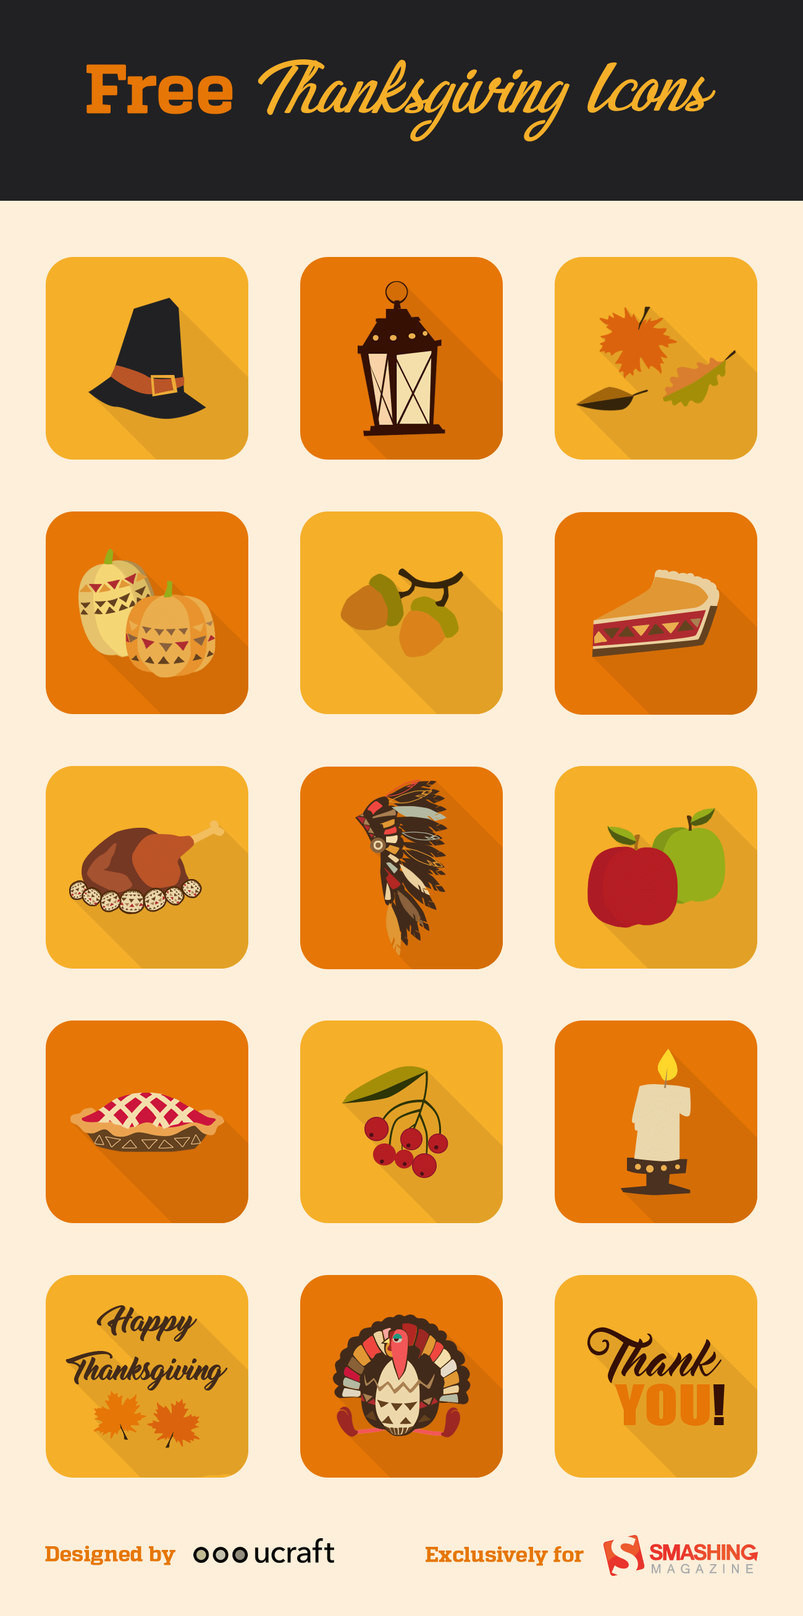 freebie-thanksgiving-icon-set-15-icons-2